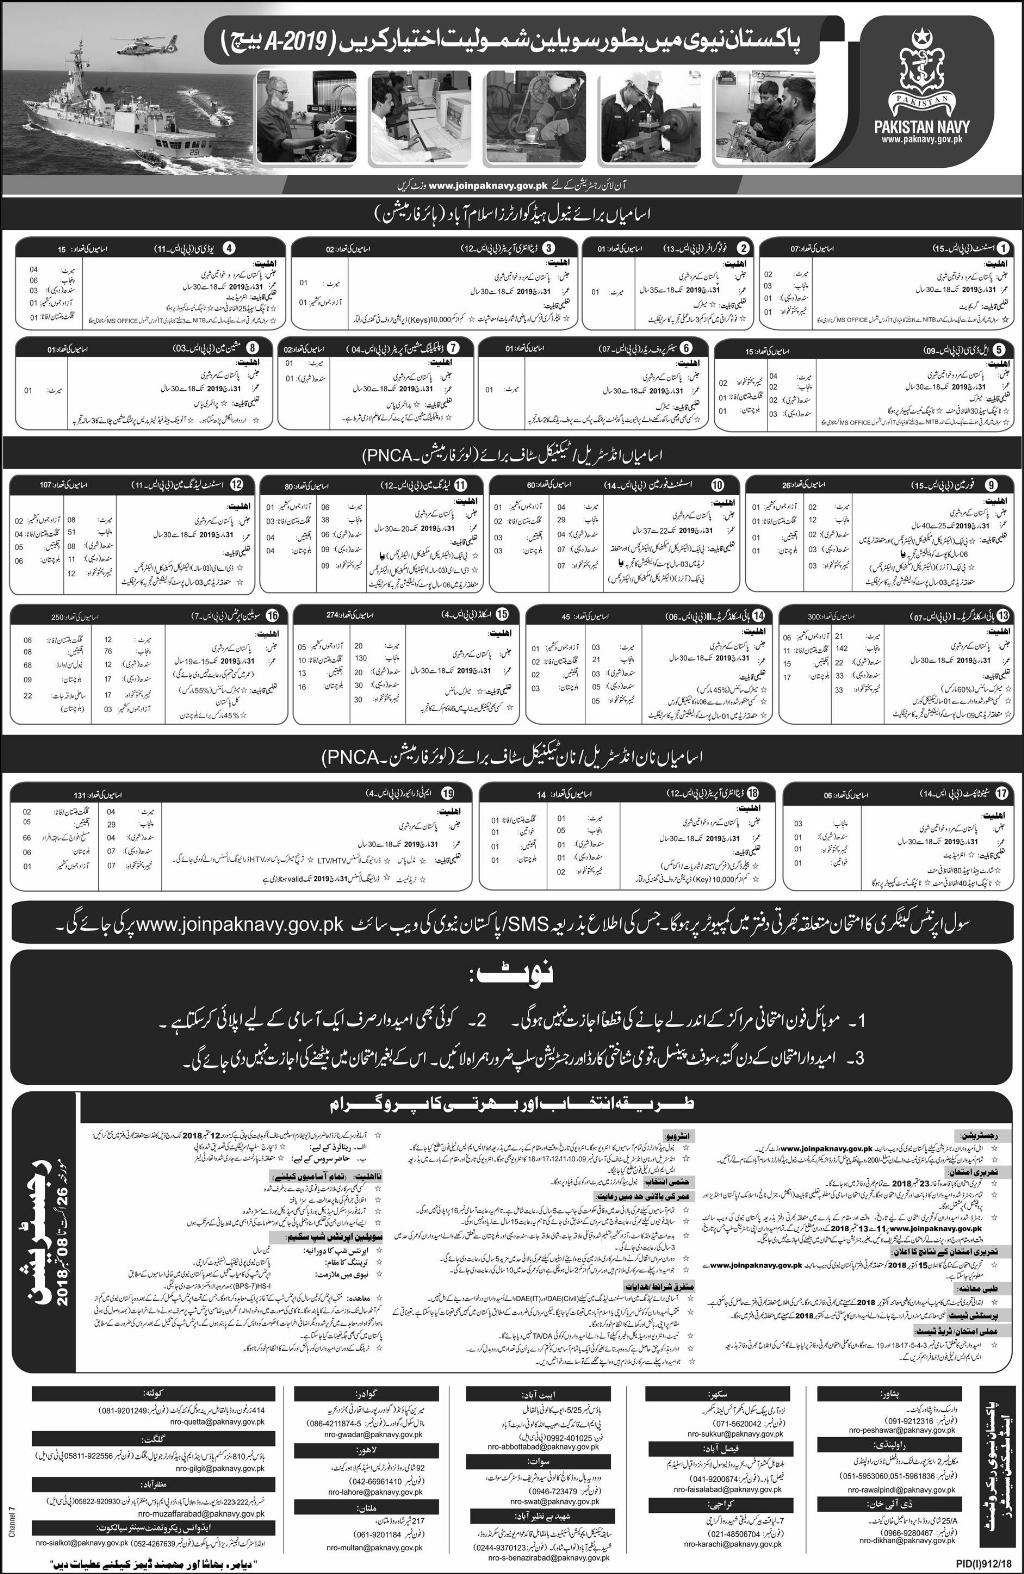 Pakistan Navy Civilian Jobs 2019 Online Registration Batch A